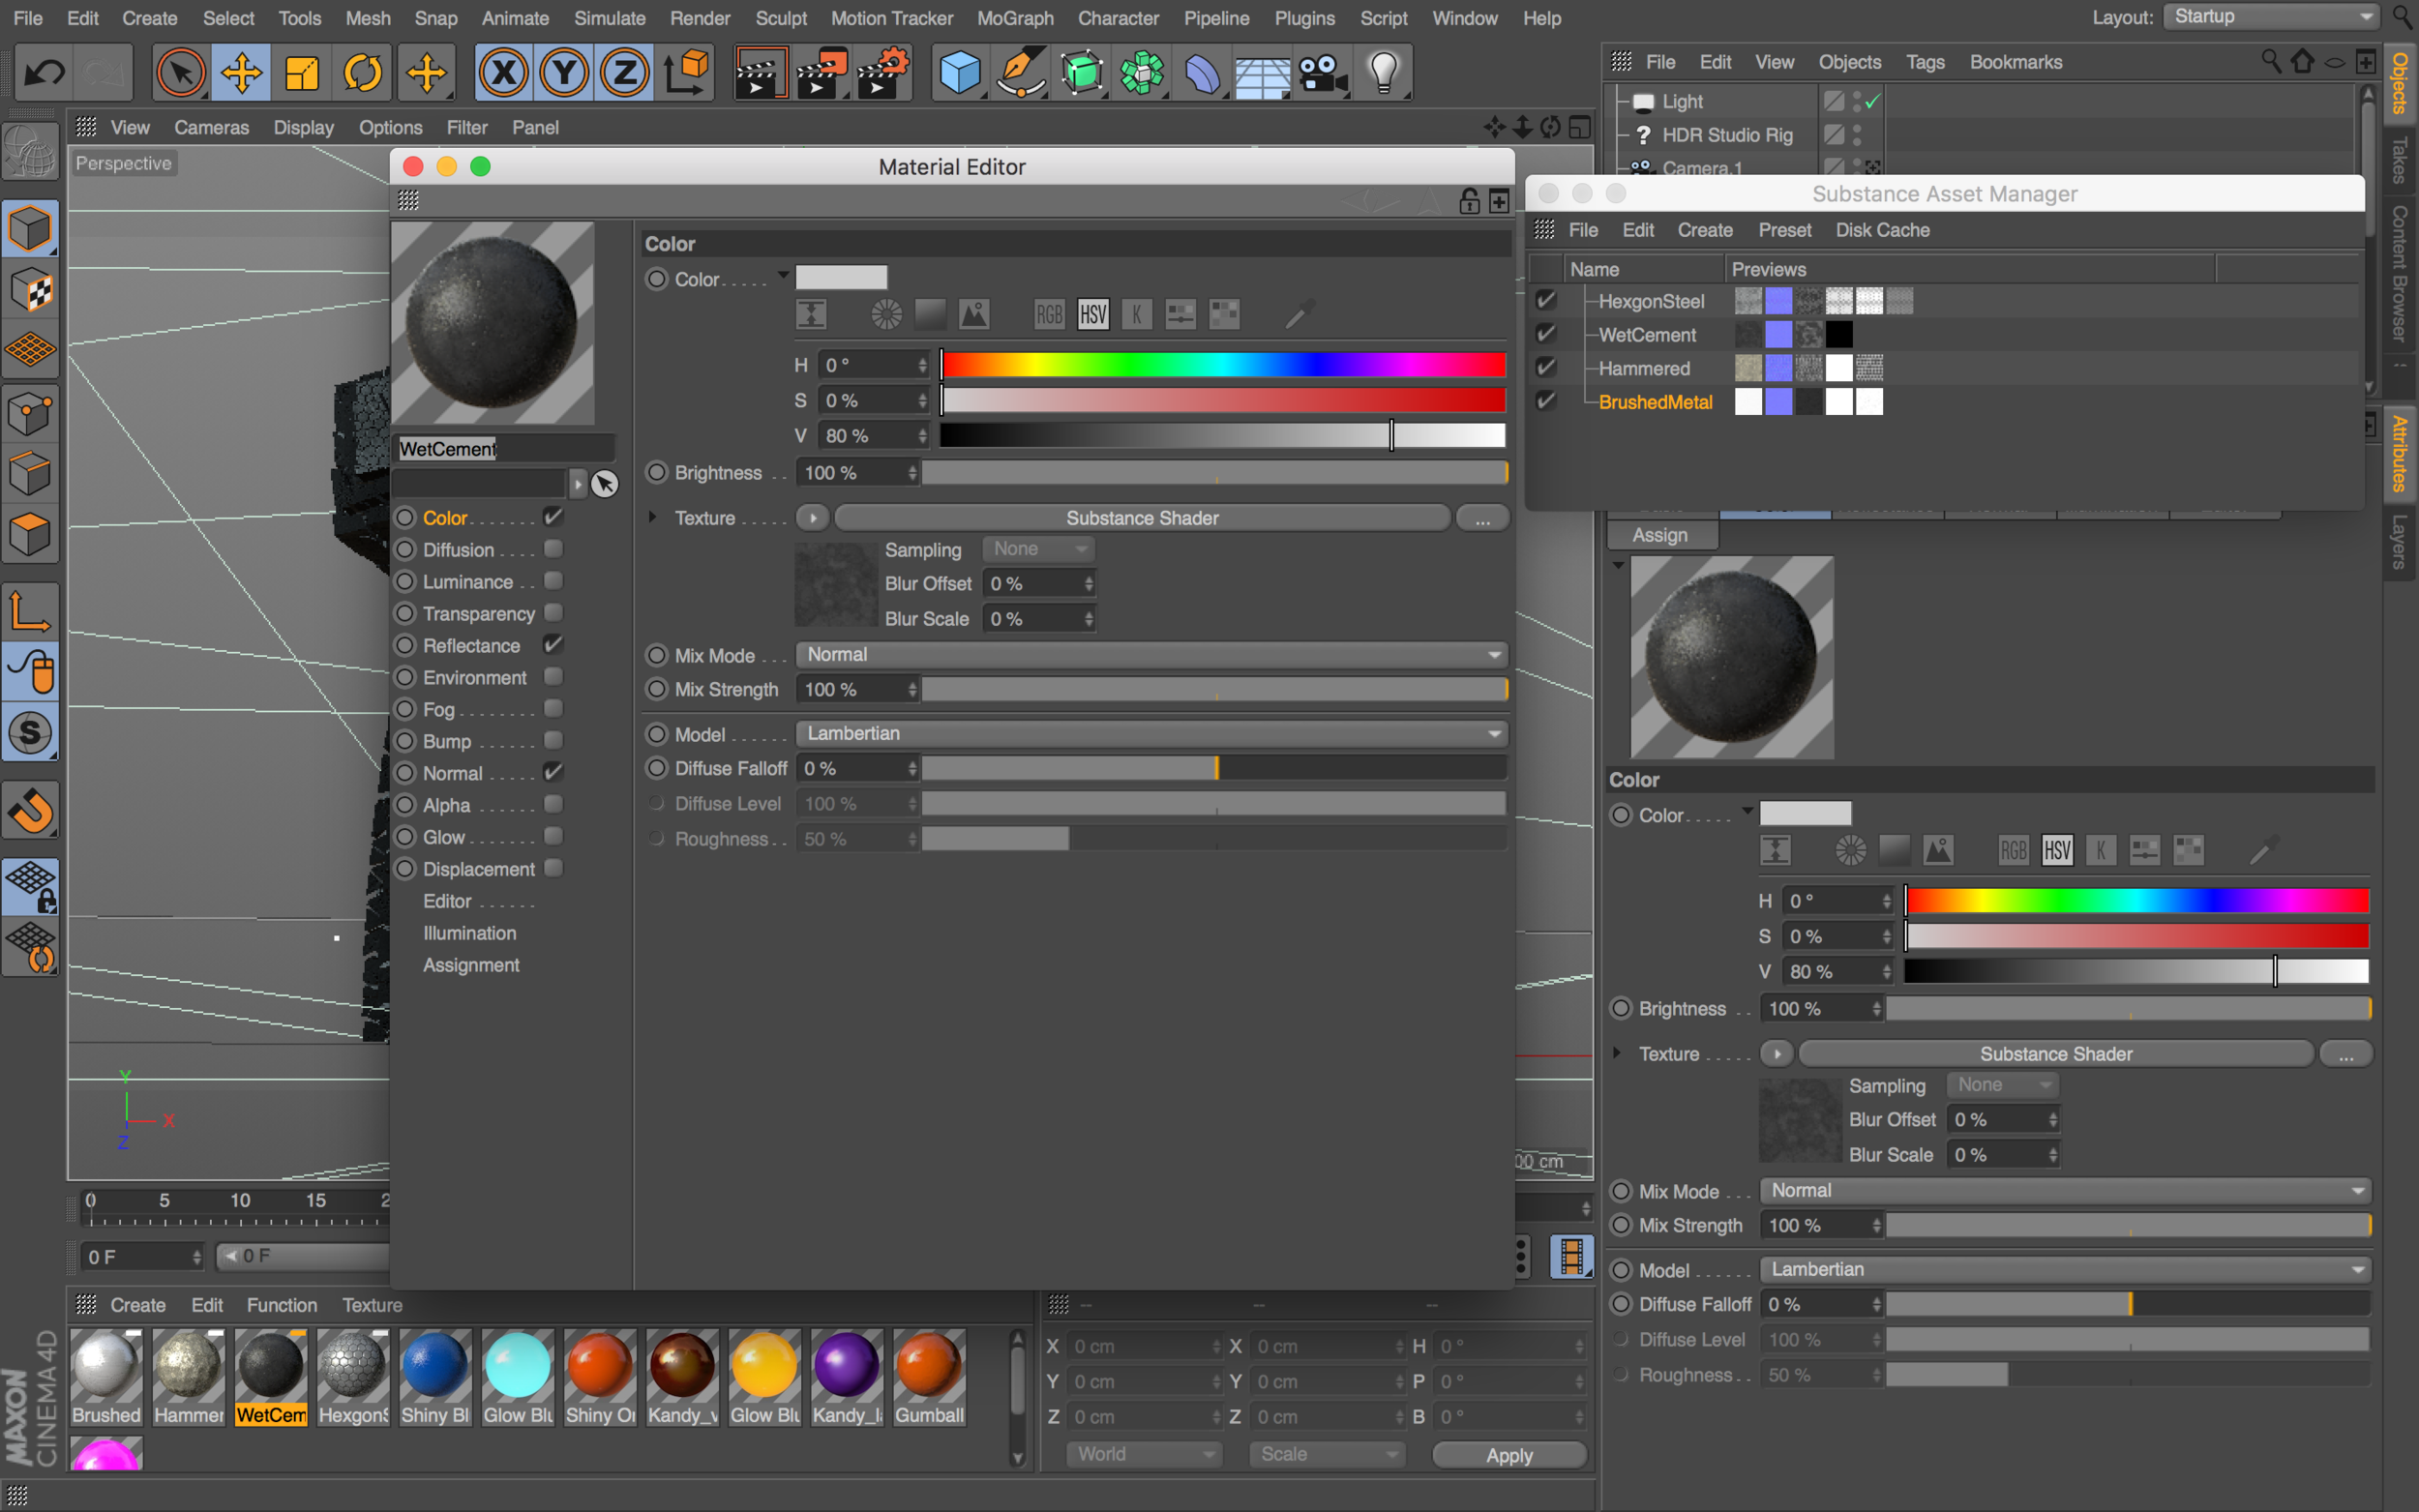 4)  You can now edit the  Substance Materials attributes  in the  Cinema 4D Material Editor